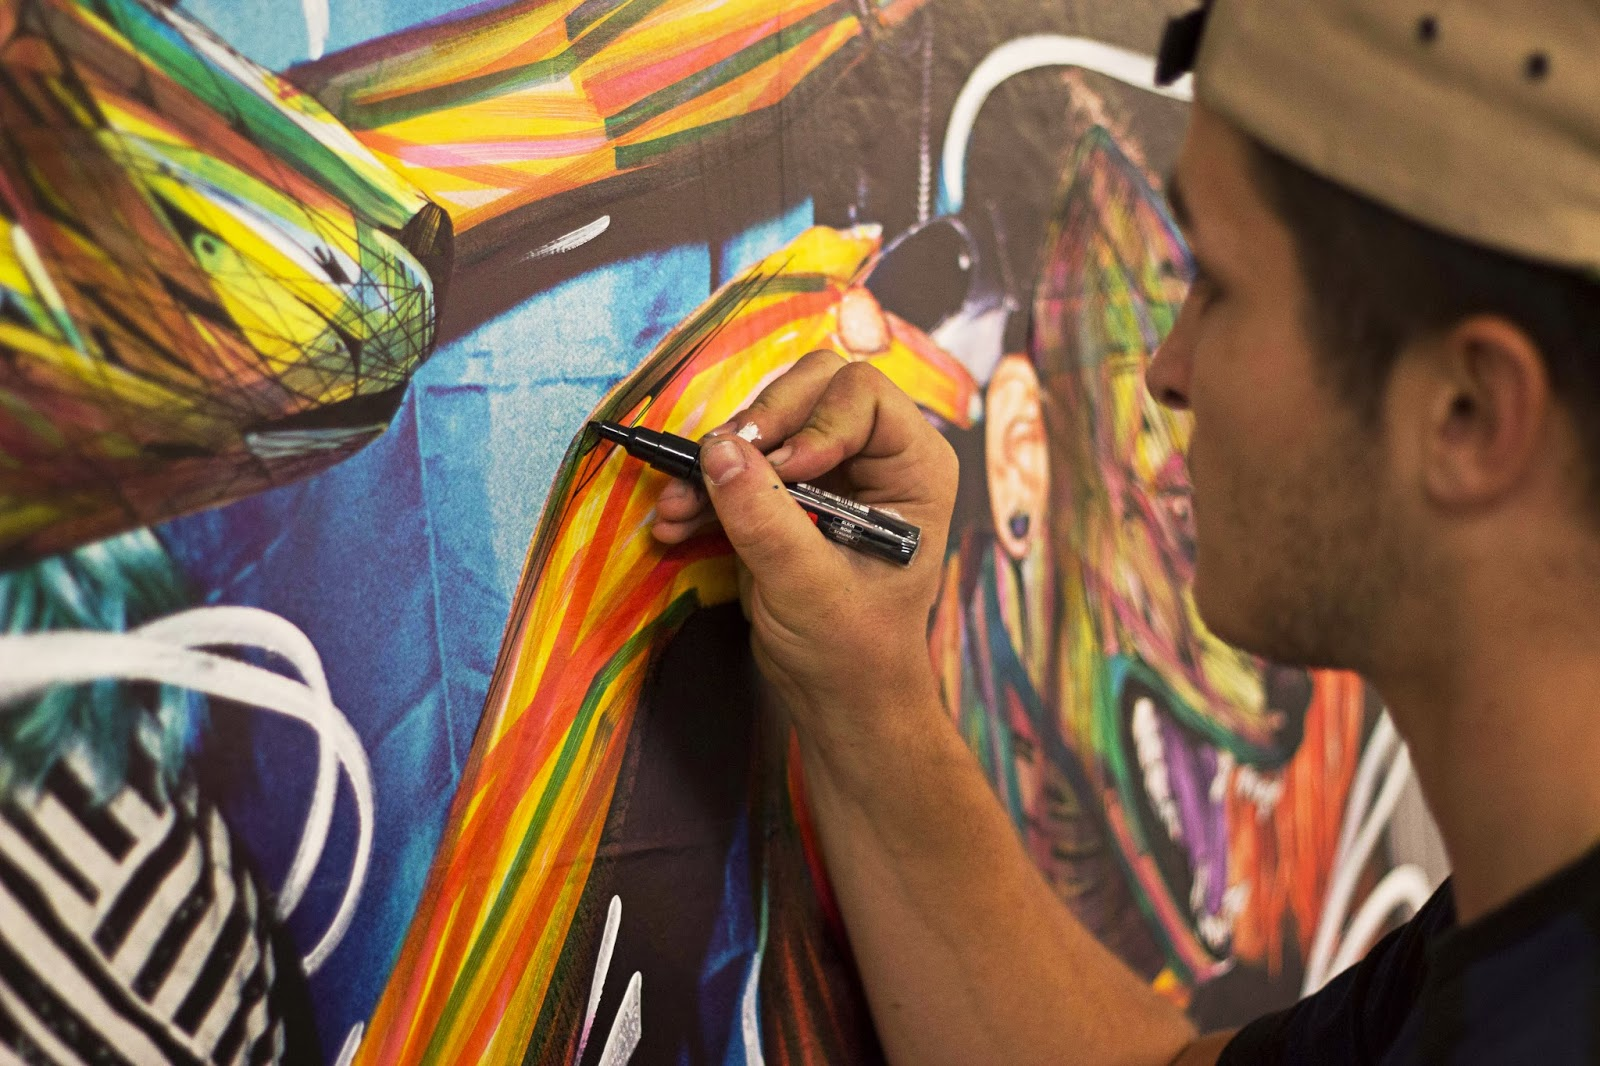 Hopare en action